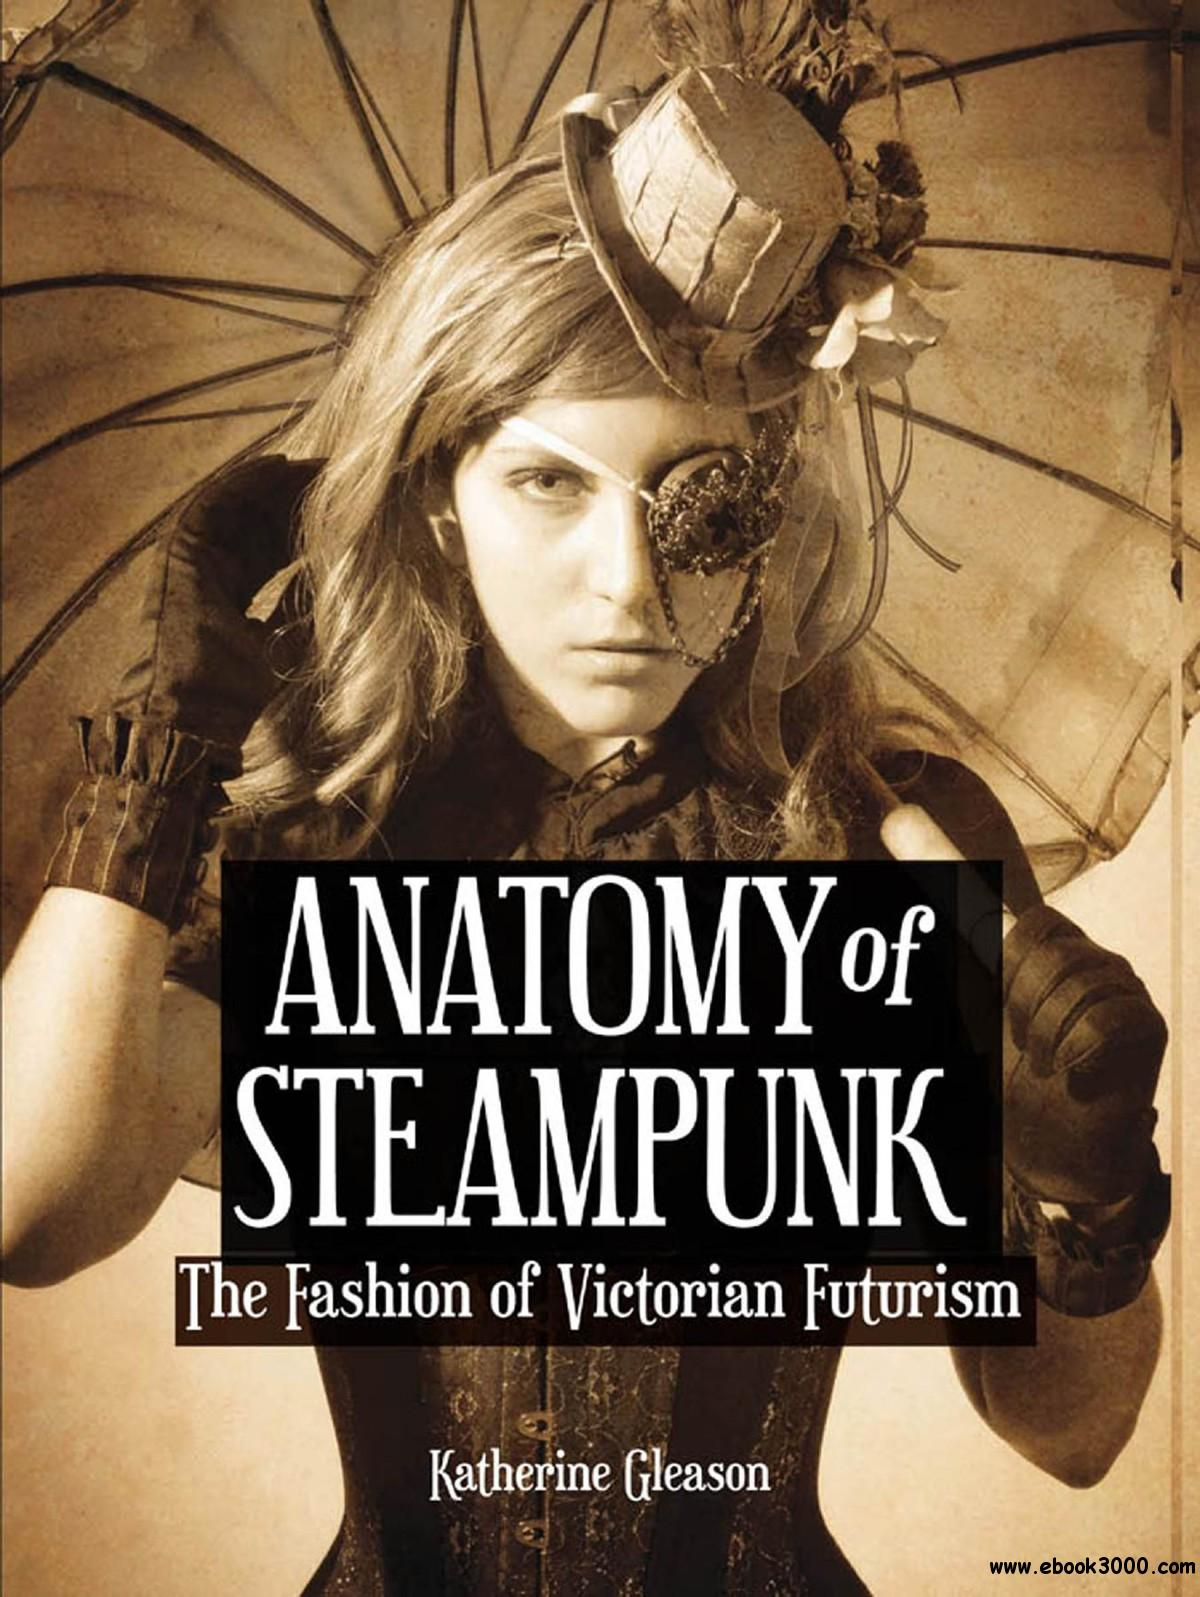 Anatomy of Steampunk: The Fashion of Victorian Futurism free download